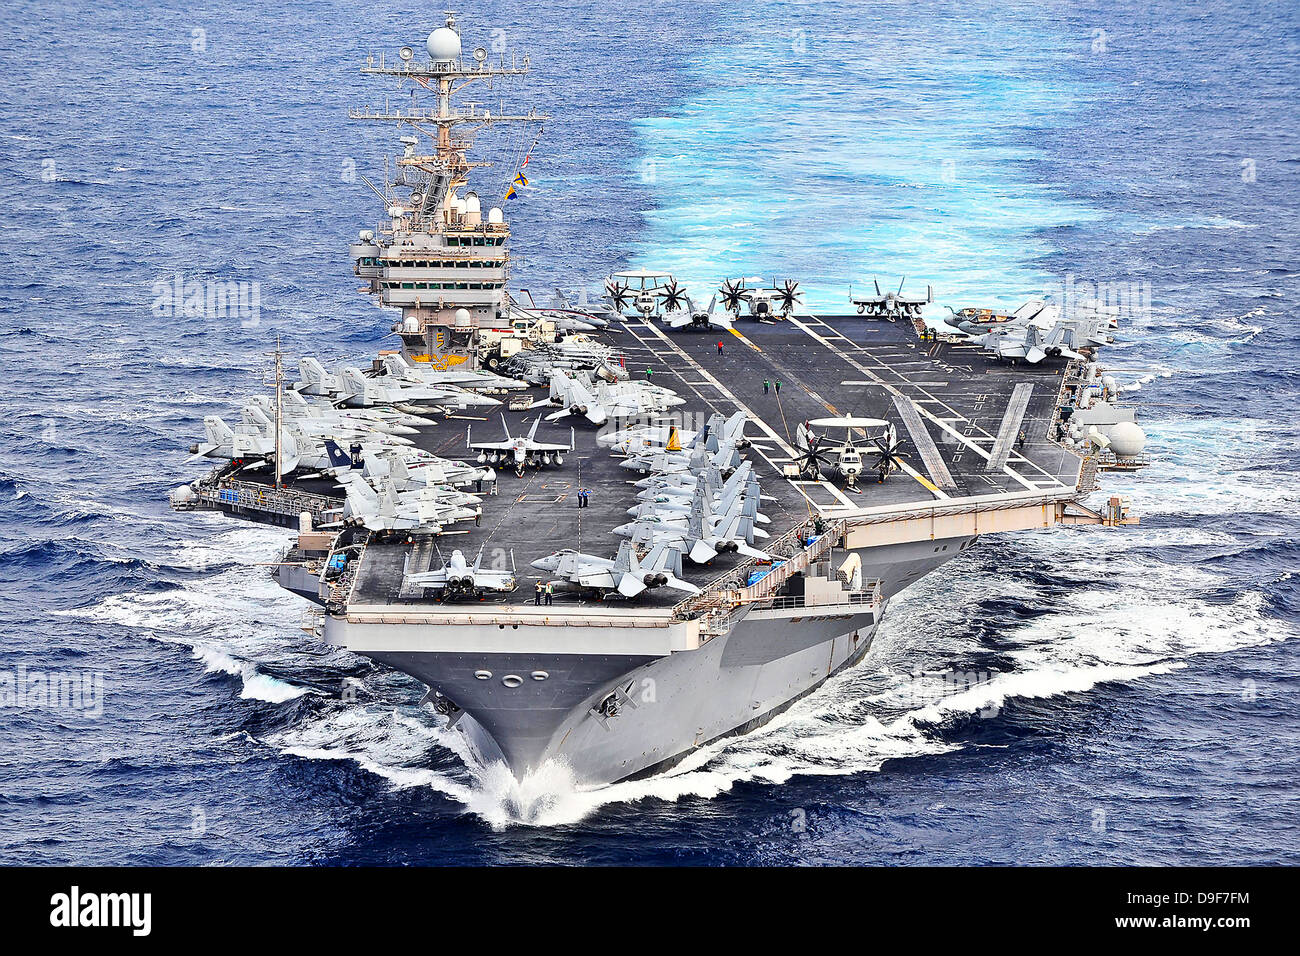 USS Abraham Lincoln transits the Pacific Ocean. - Stock Image